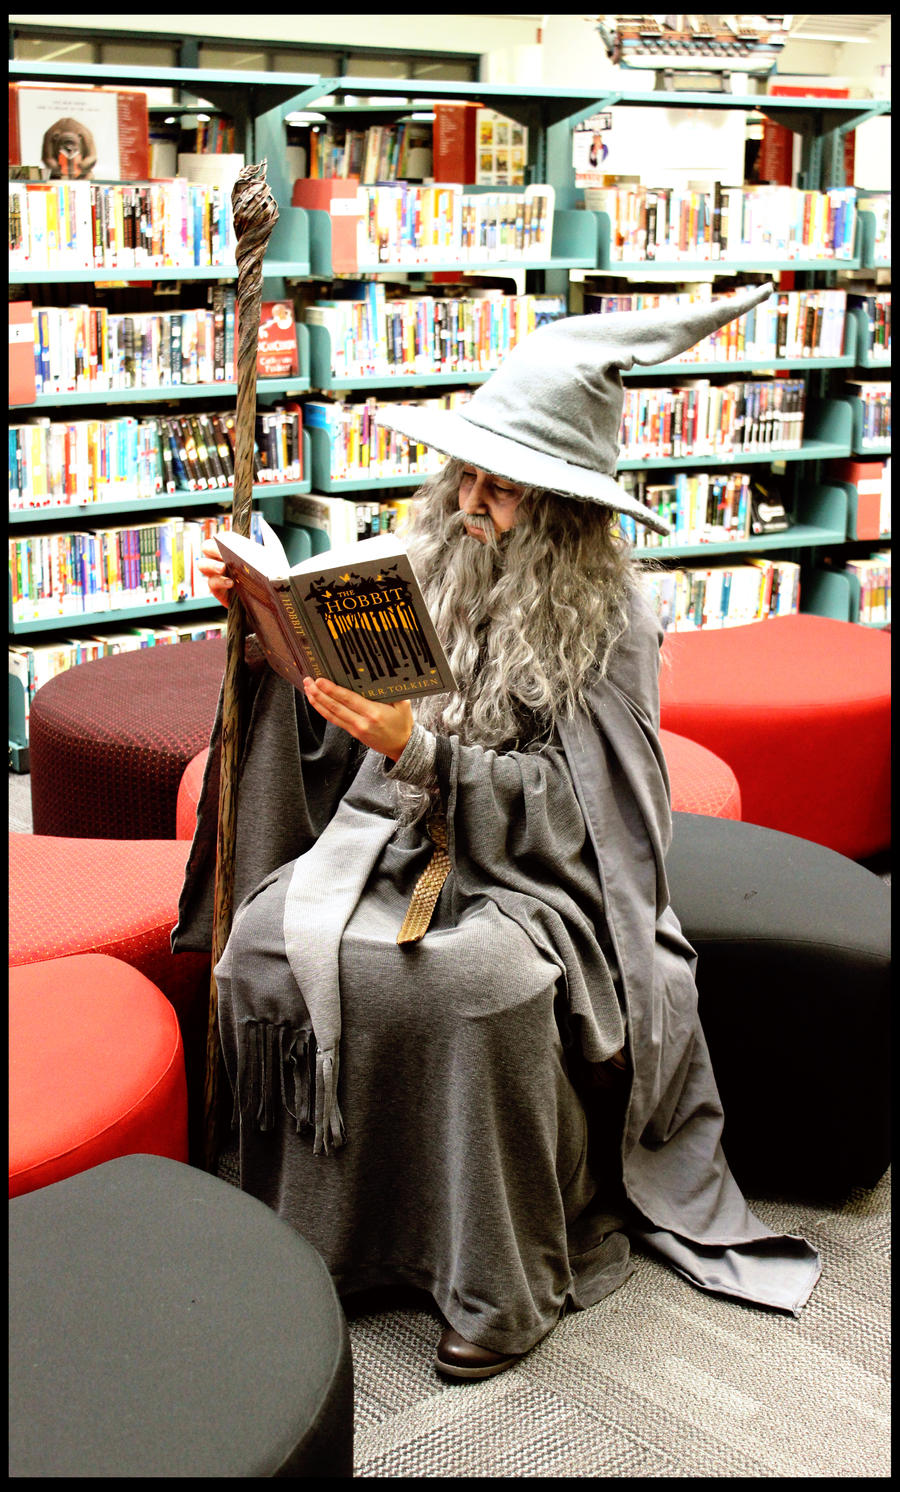 The Hobbit: Gandalf and a Good Book by Berpi